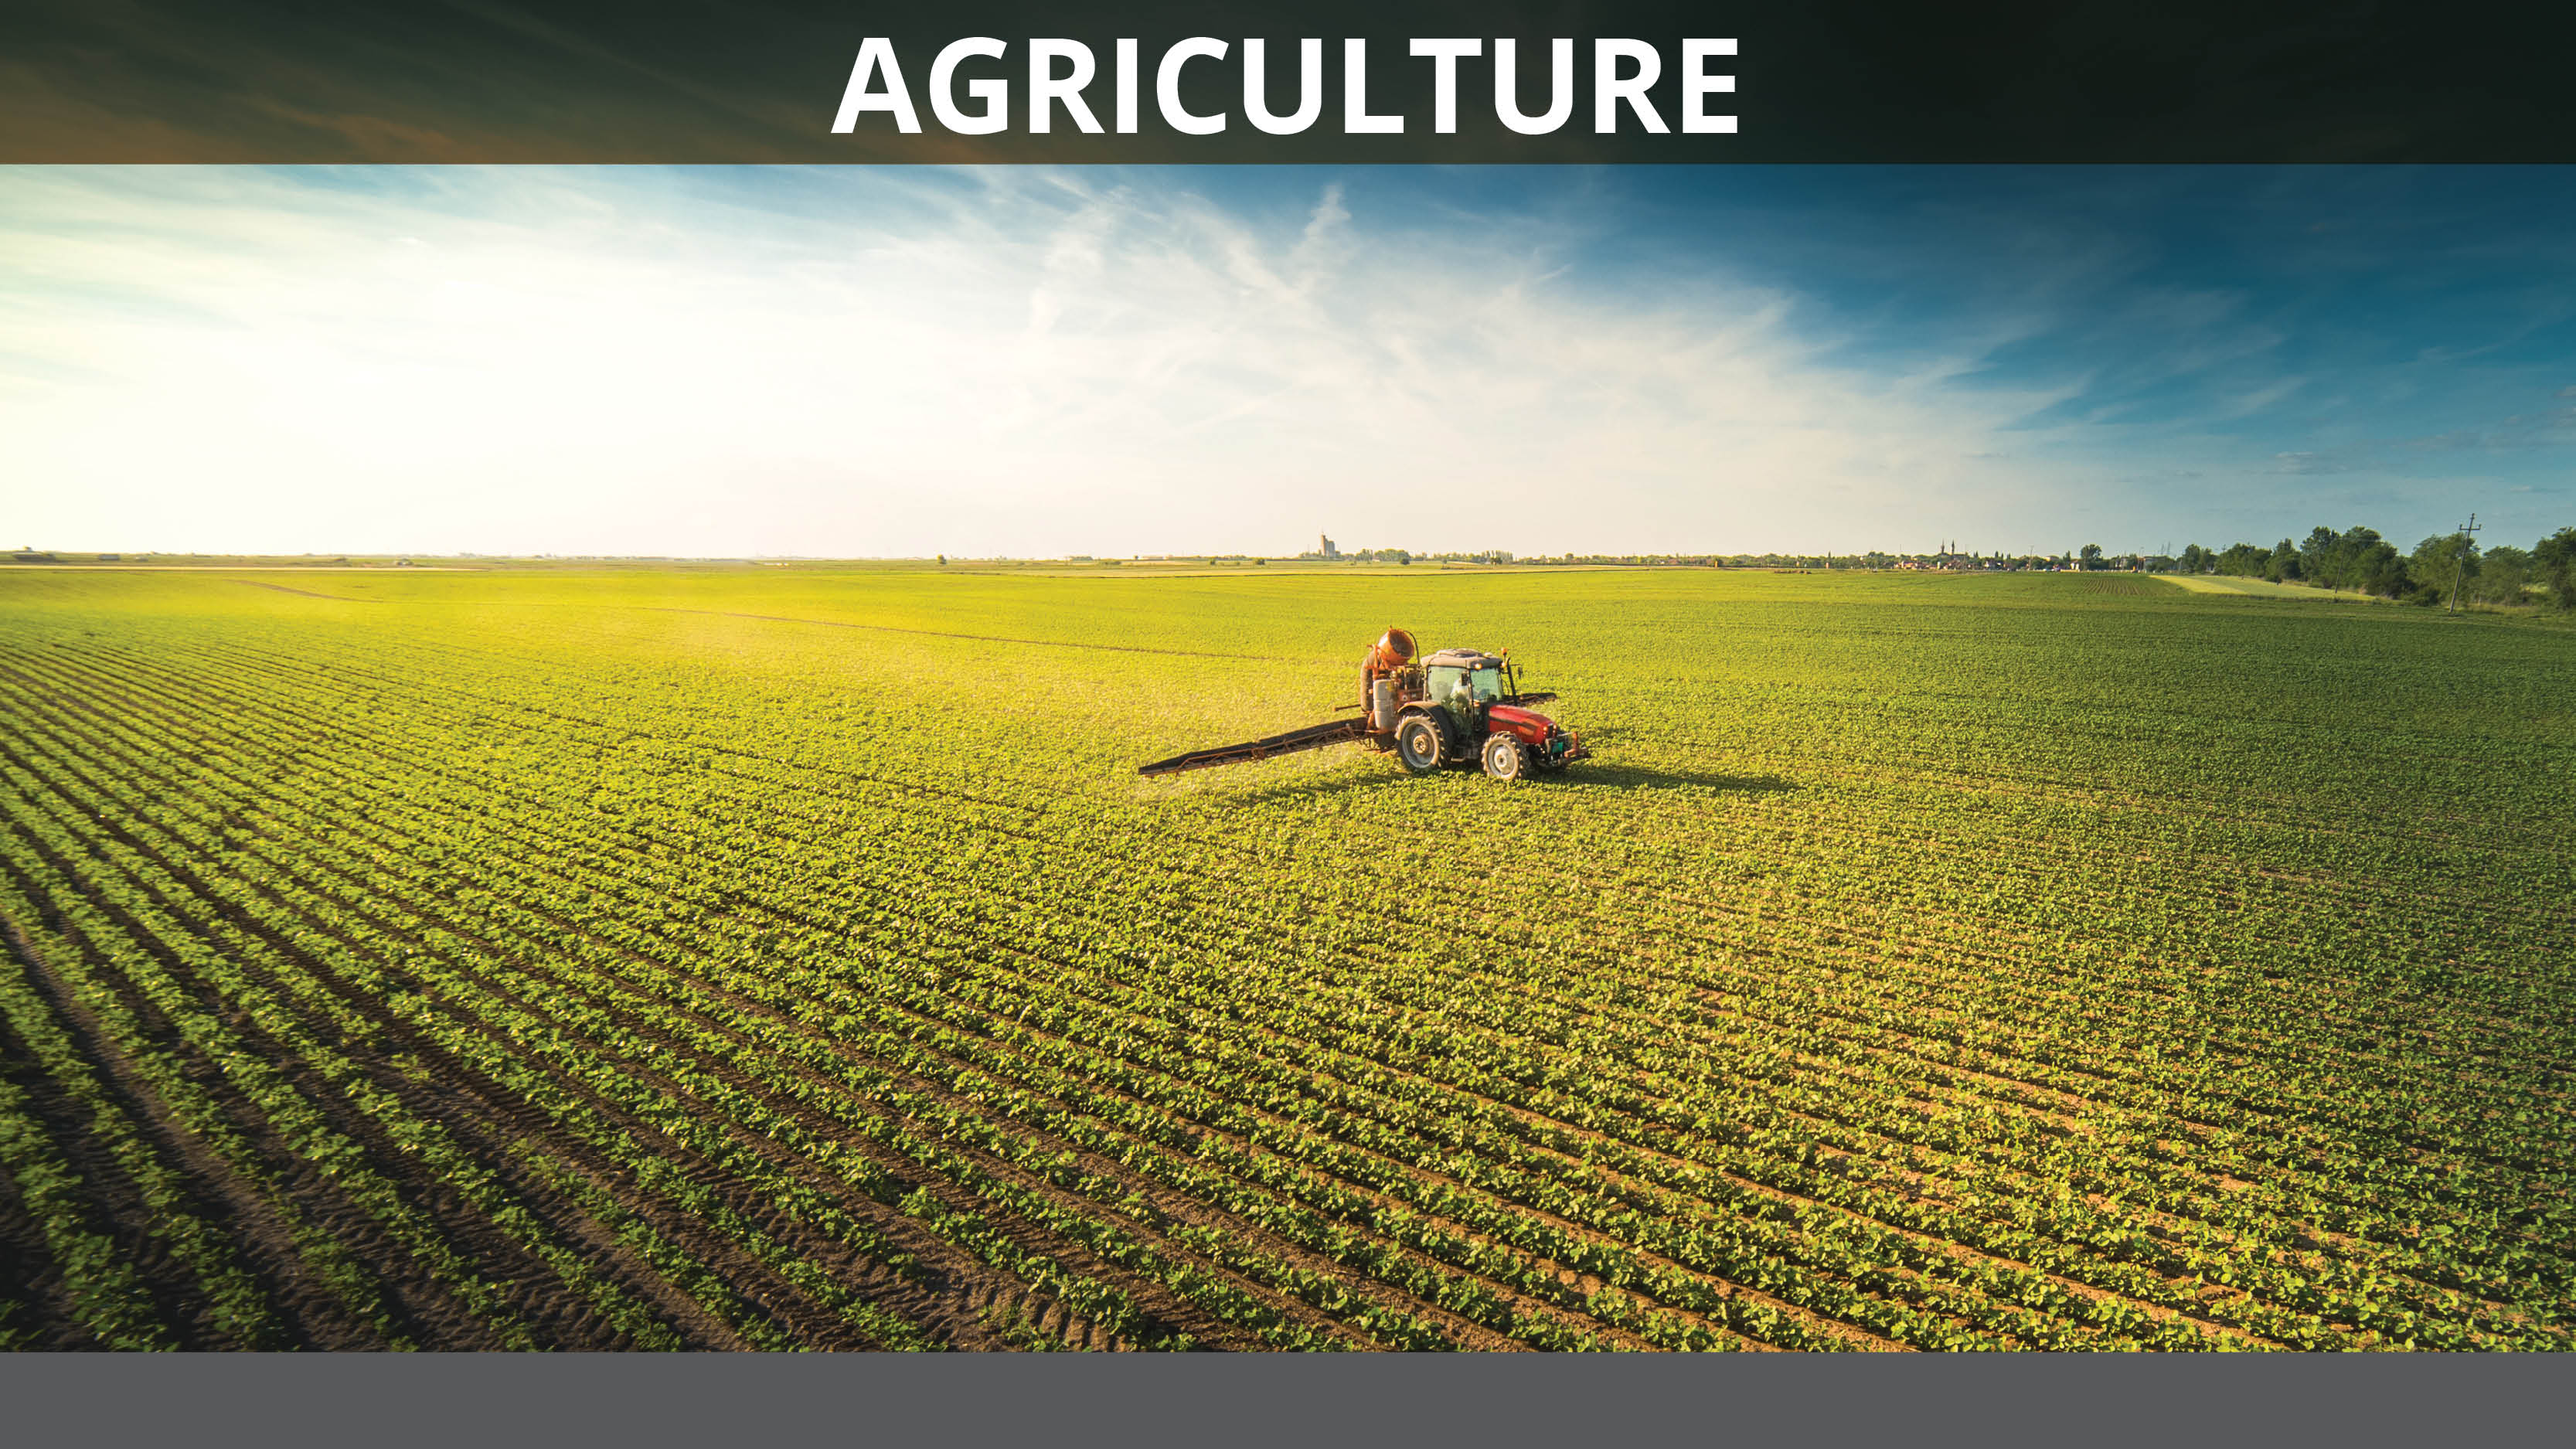 <h4>$166 BILLION</h4><h5>in proposed cuts over ten years</h5><p>CASE STUDY: The federal crop insurance program forces taxpayers to subsidize $8 billion in insurance premiums for large agribusinesses every year. </p><em>Photo credit: Fotokostic via Shutterstock</em>